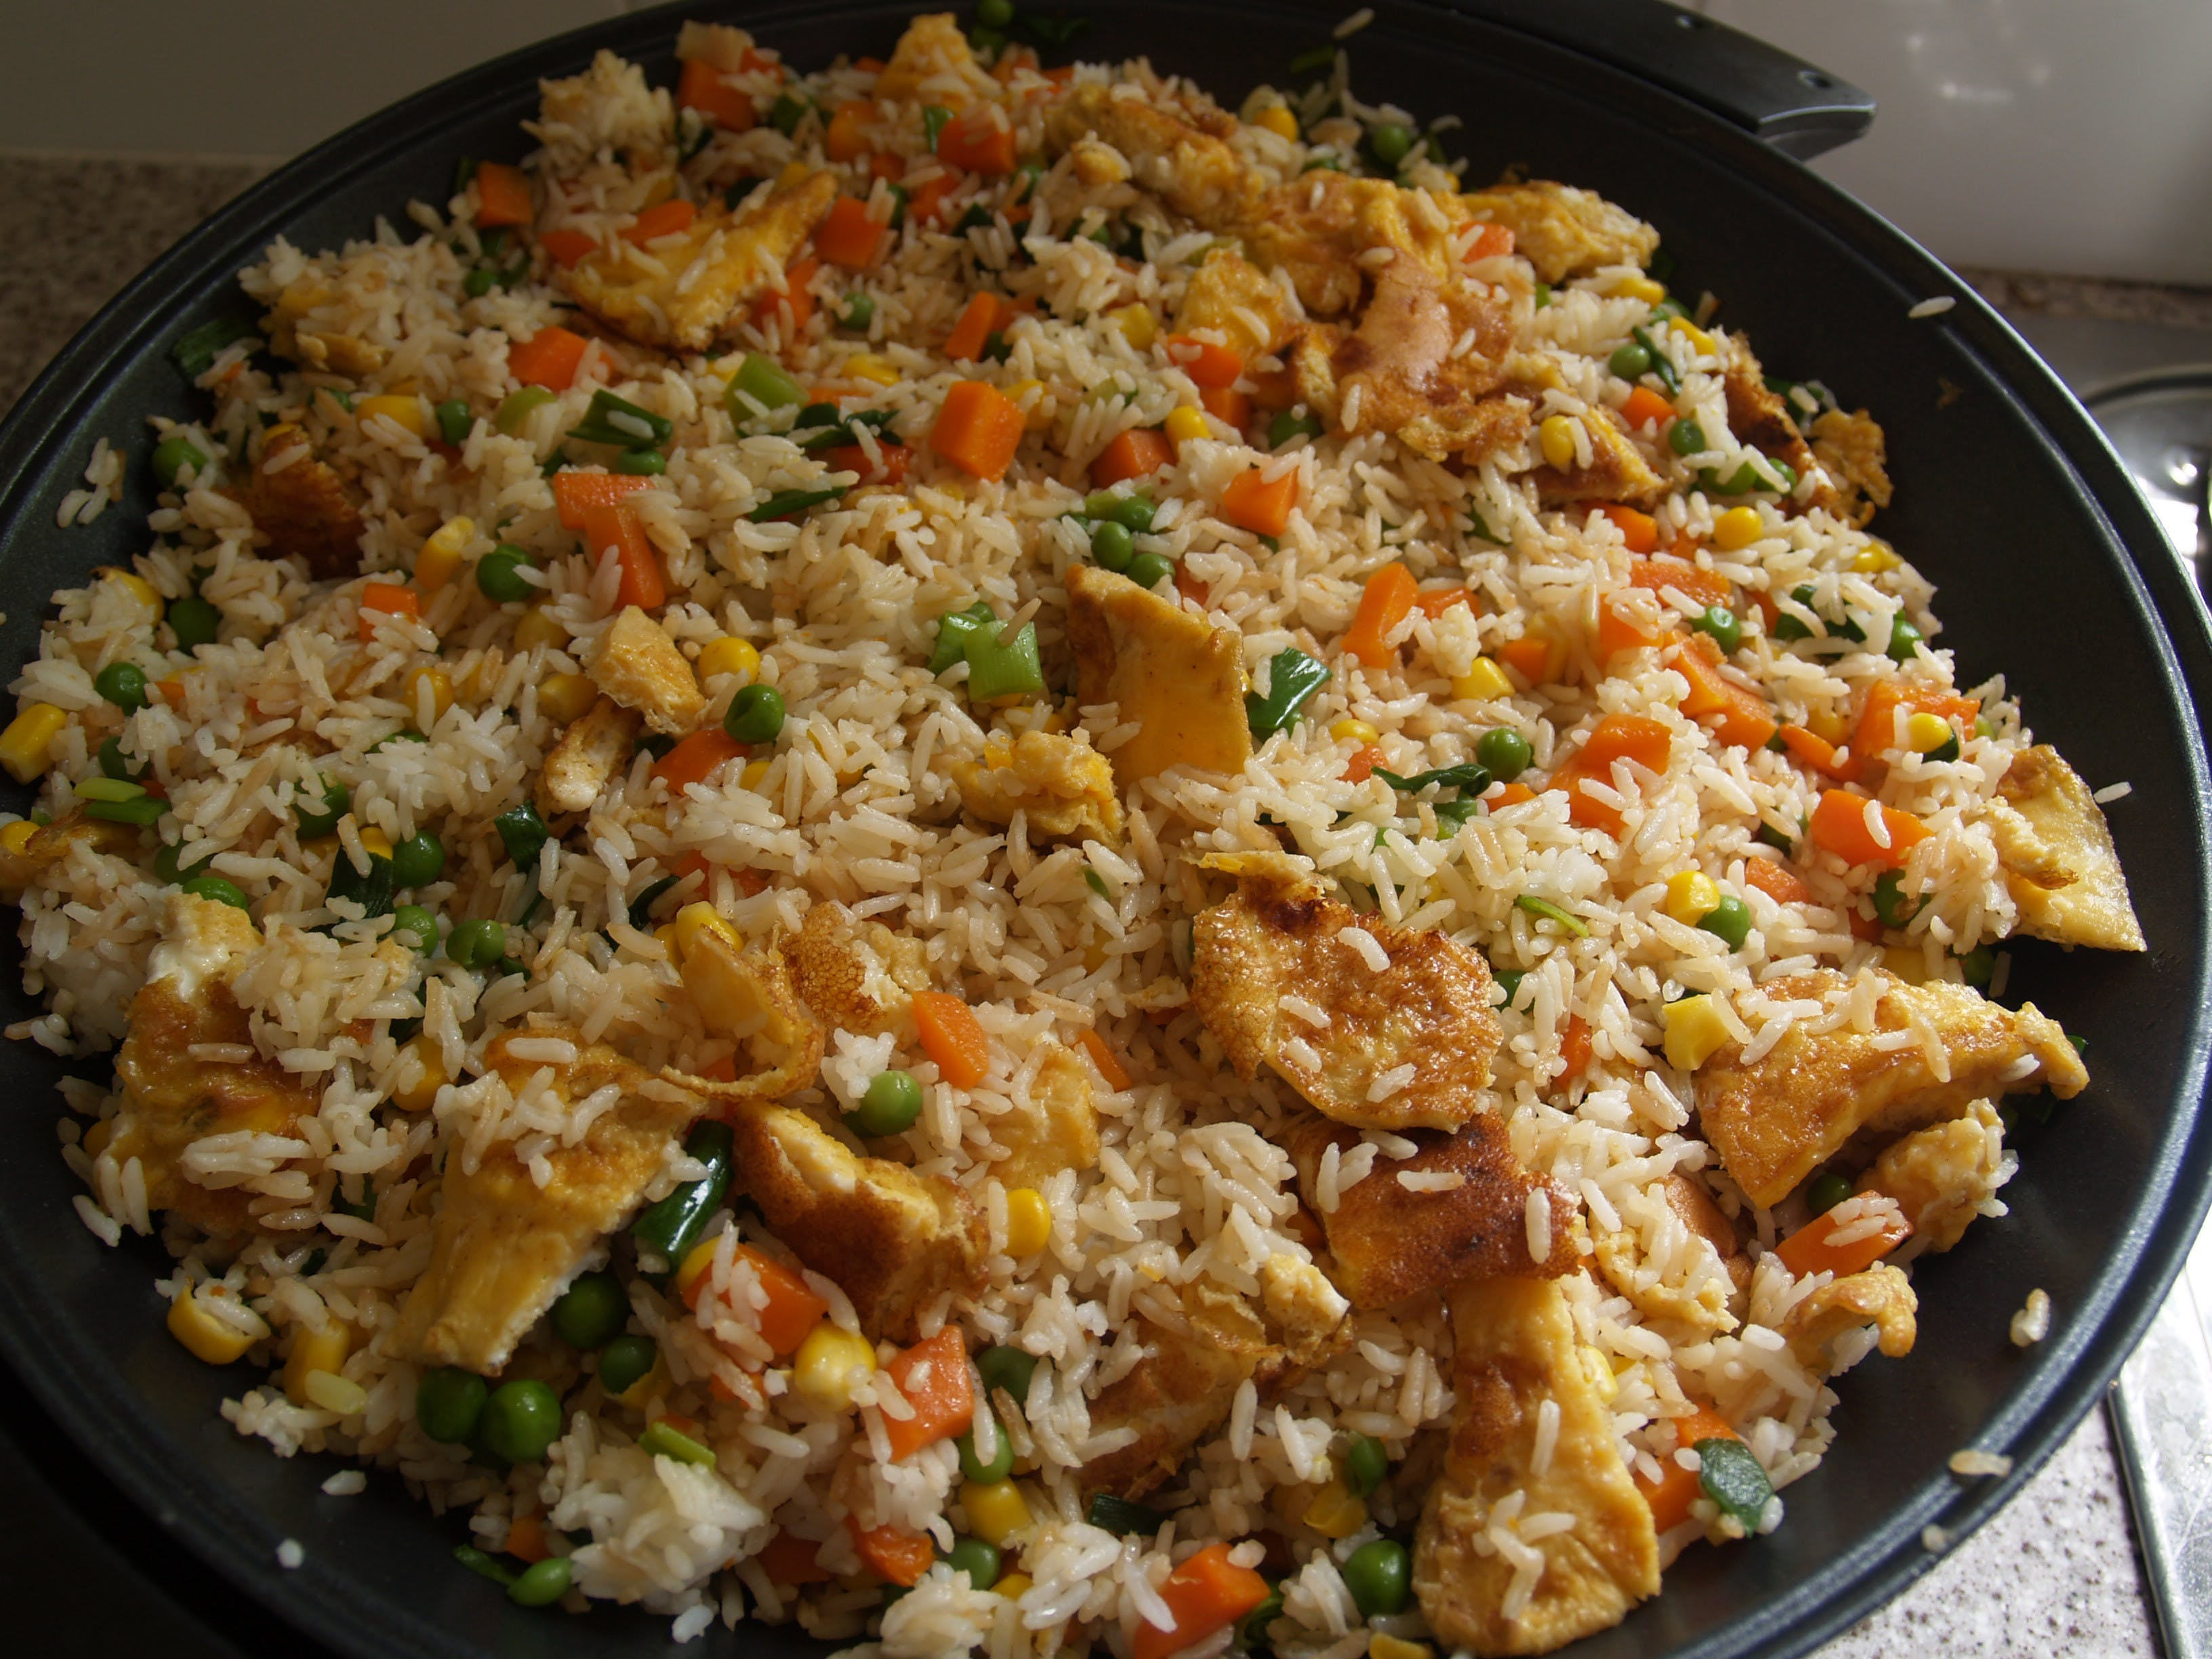 Free stock photo of Fried rice, omelette, peas and corn, diced carrot